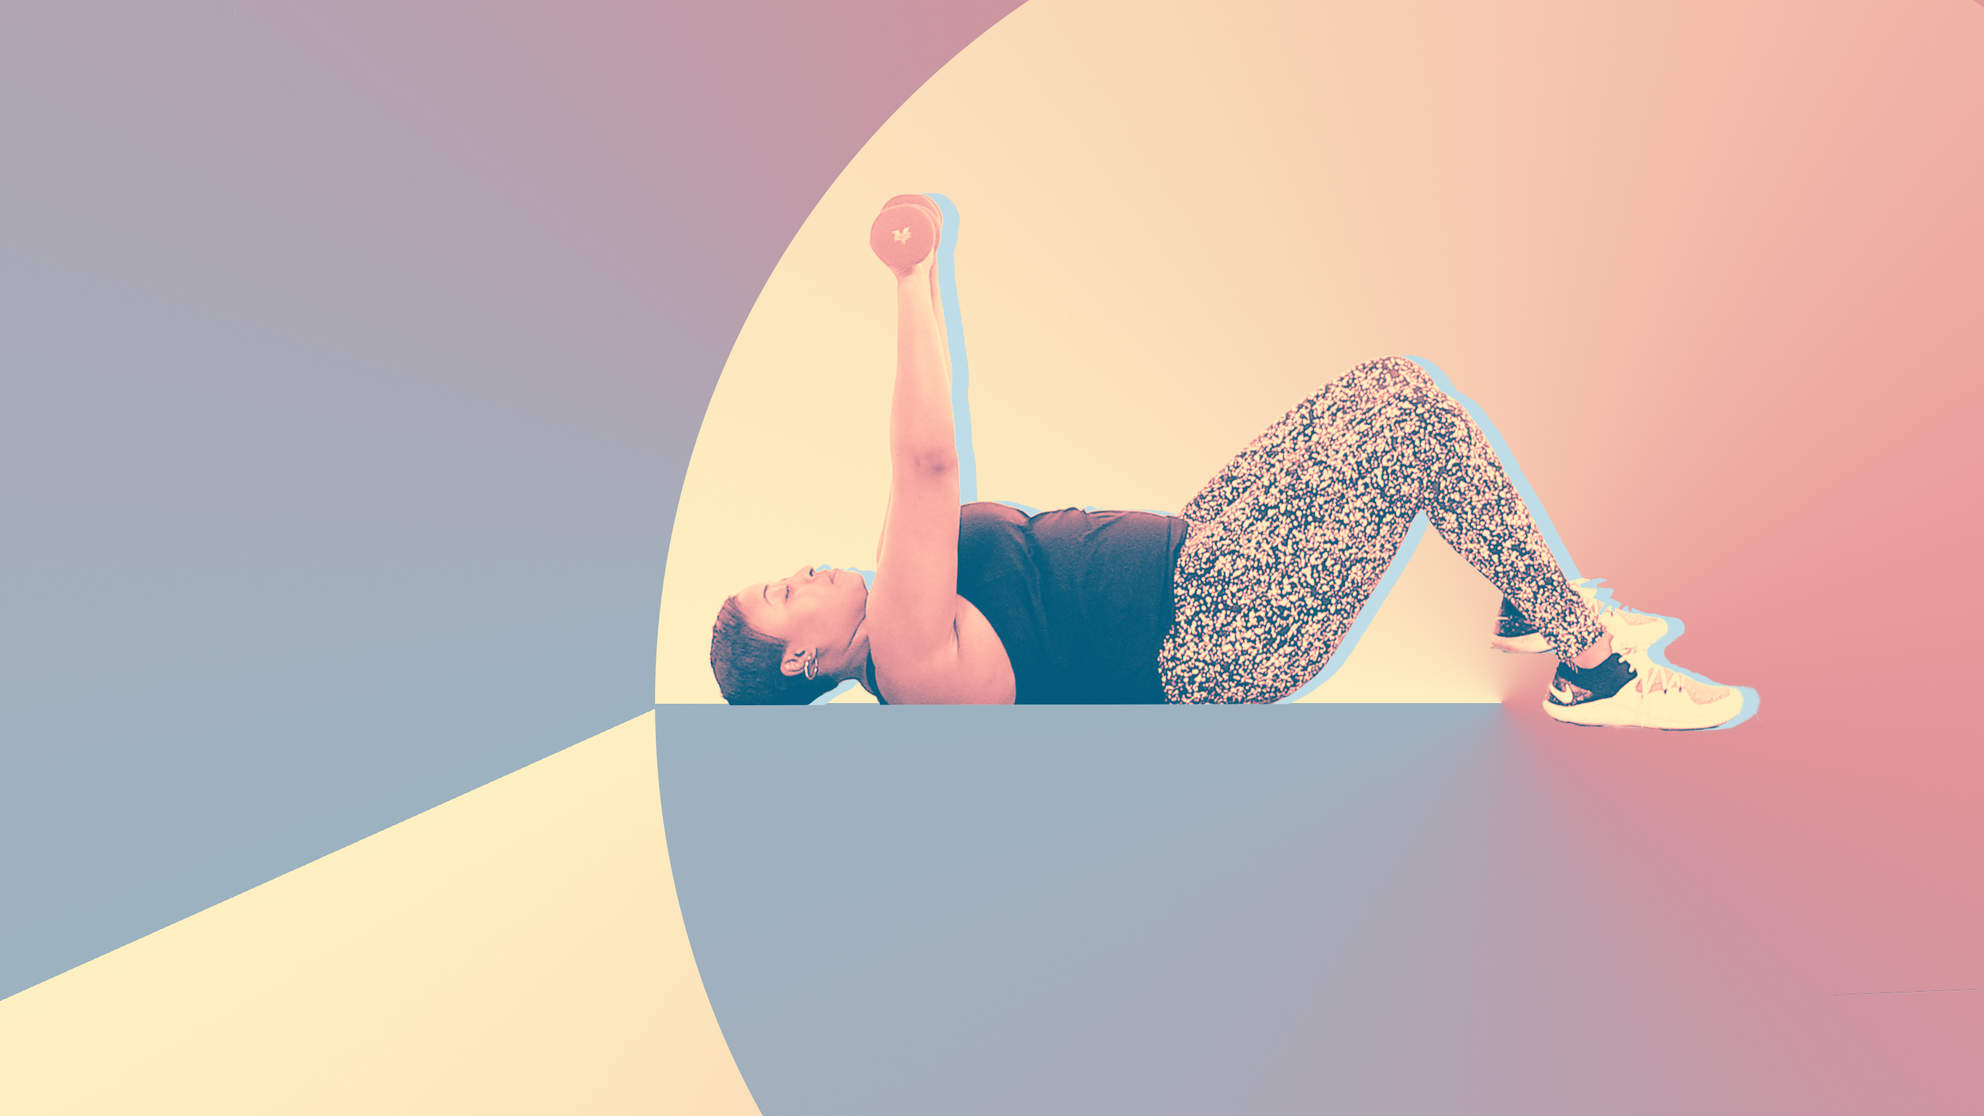 This Chest Exercises Will Strengthen Your Upper Body In 21